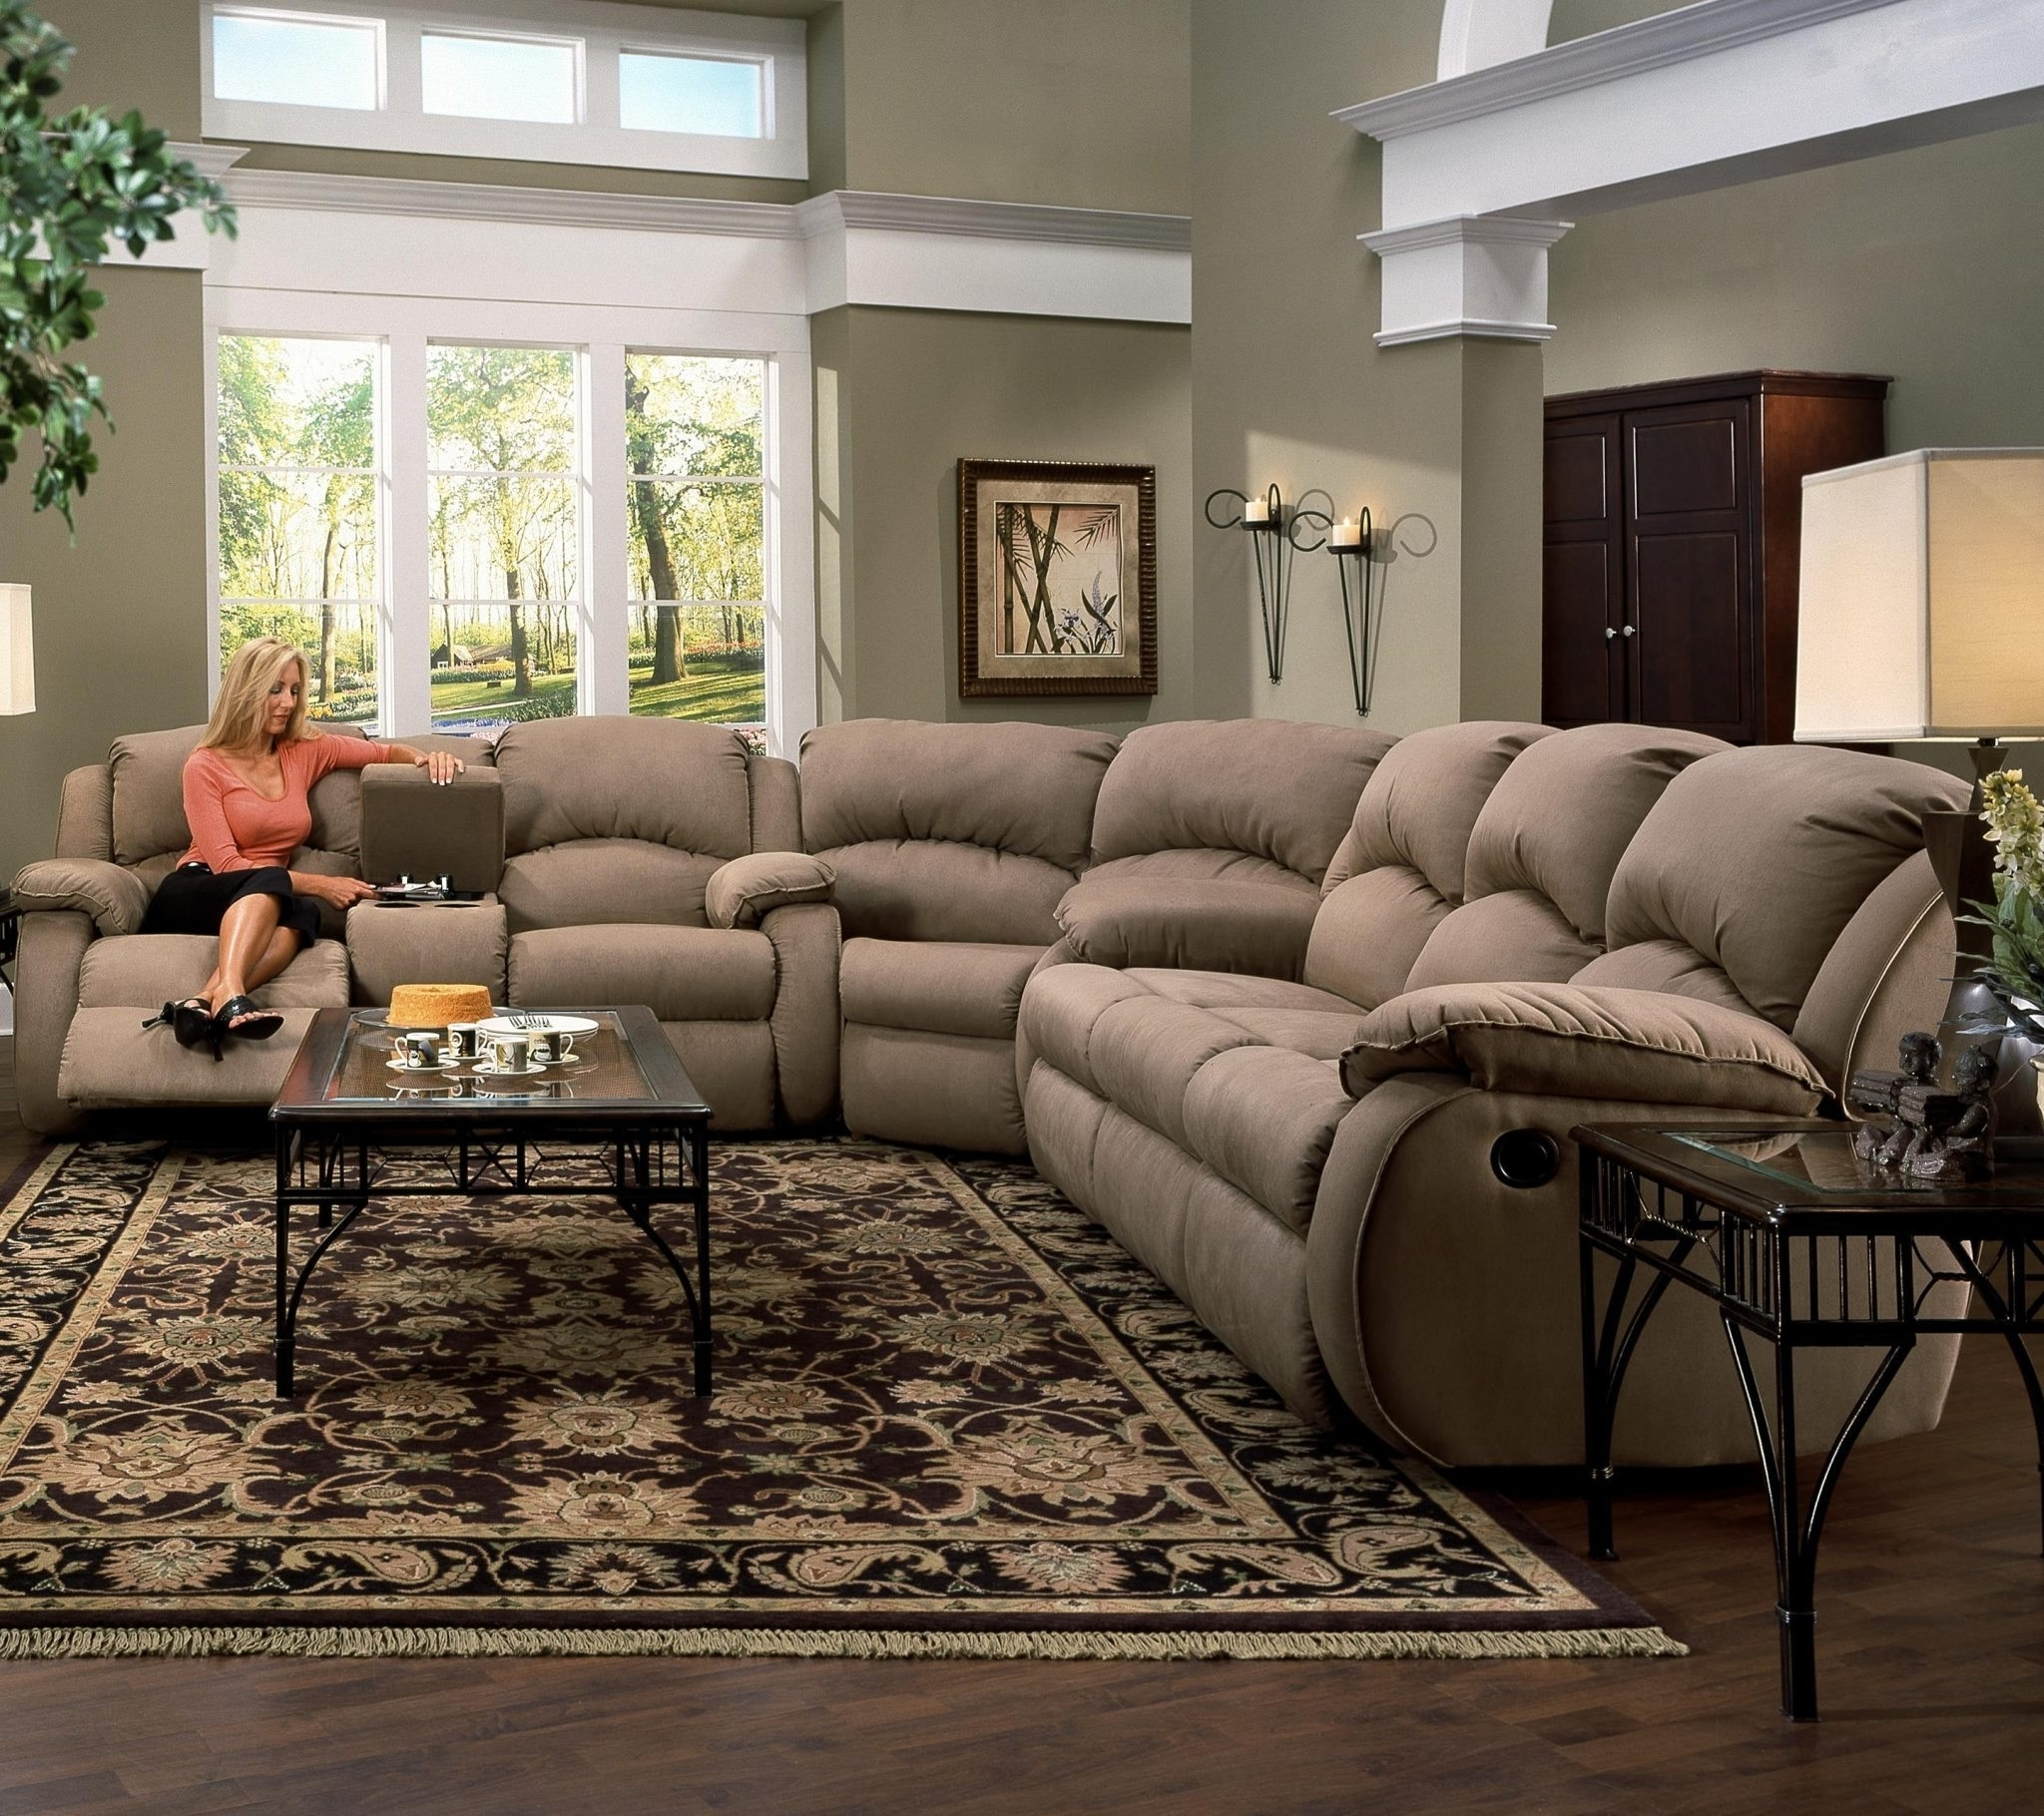 Most Recent Curved Sectional Sofas With Recliner In Furniture : Awesome Walmart Sectionals Lovely Sears Canada (View 10 of 15)